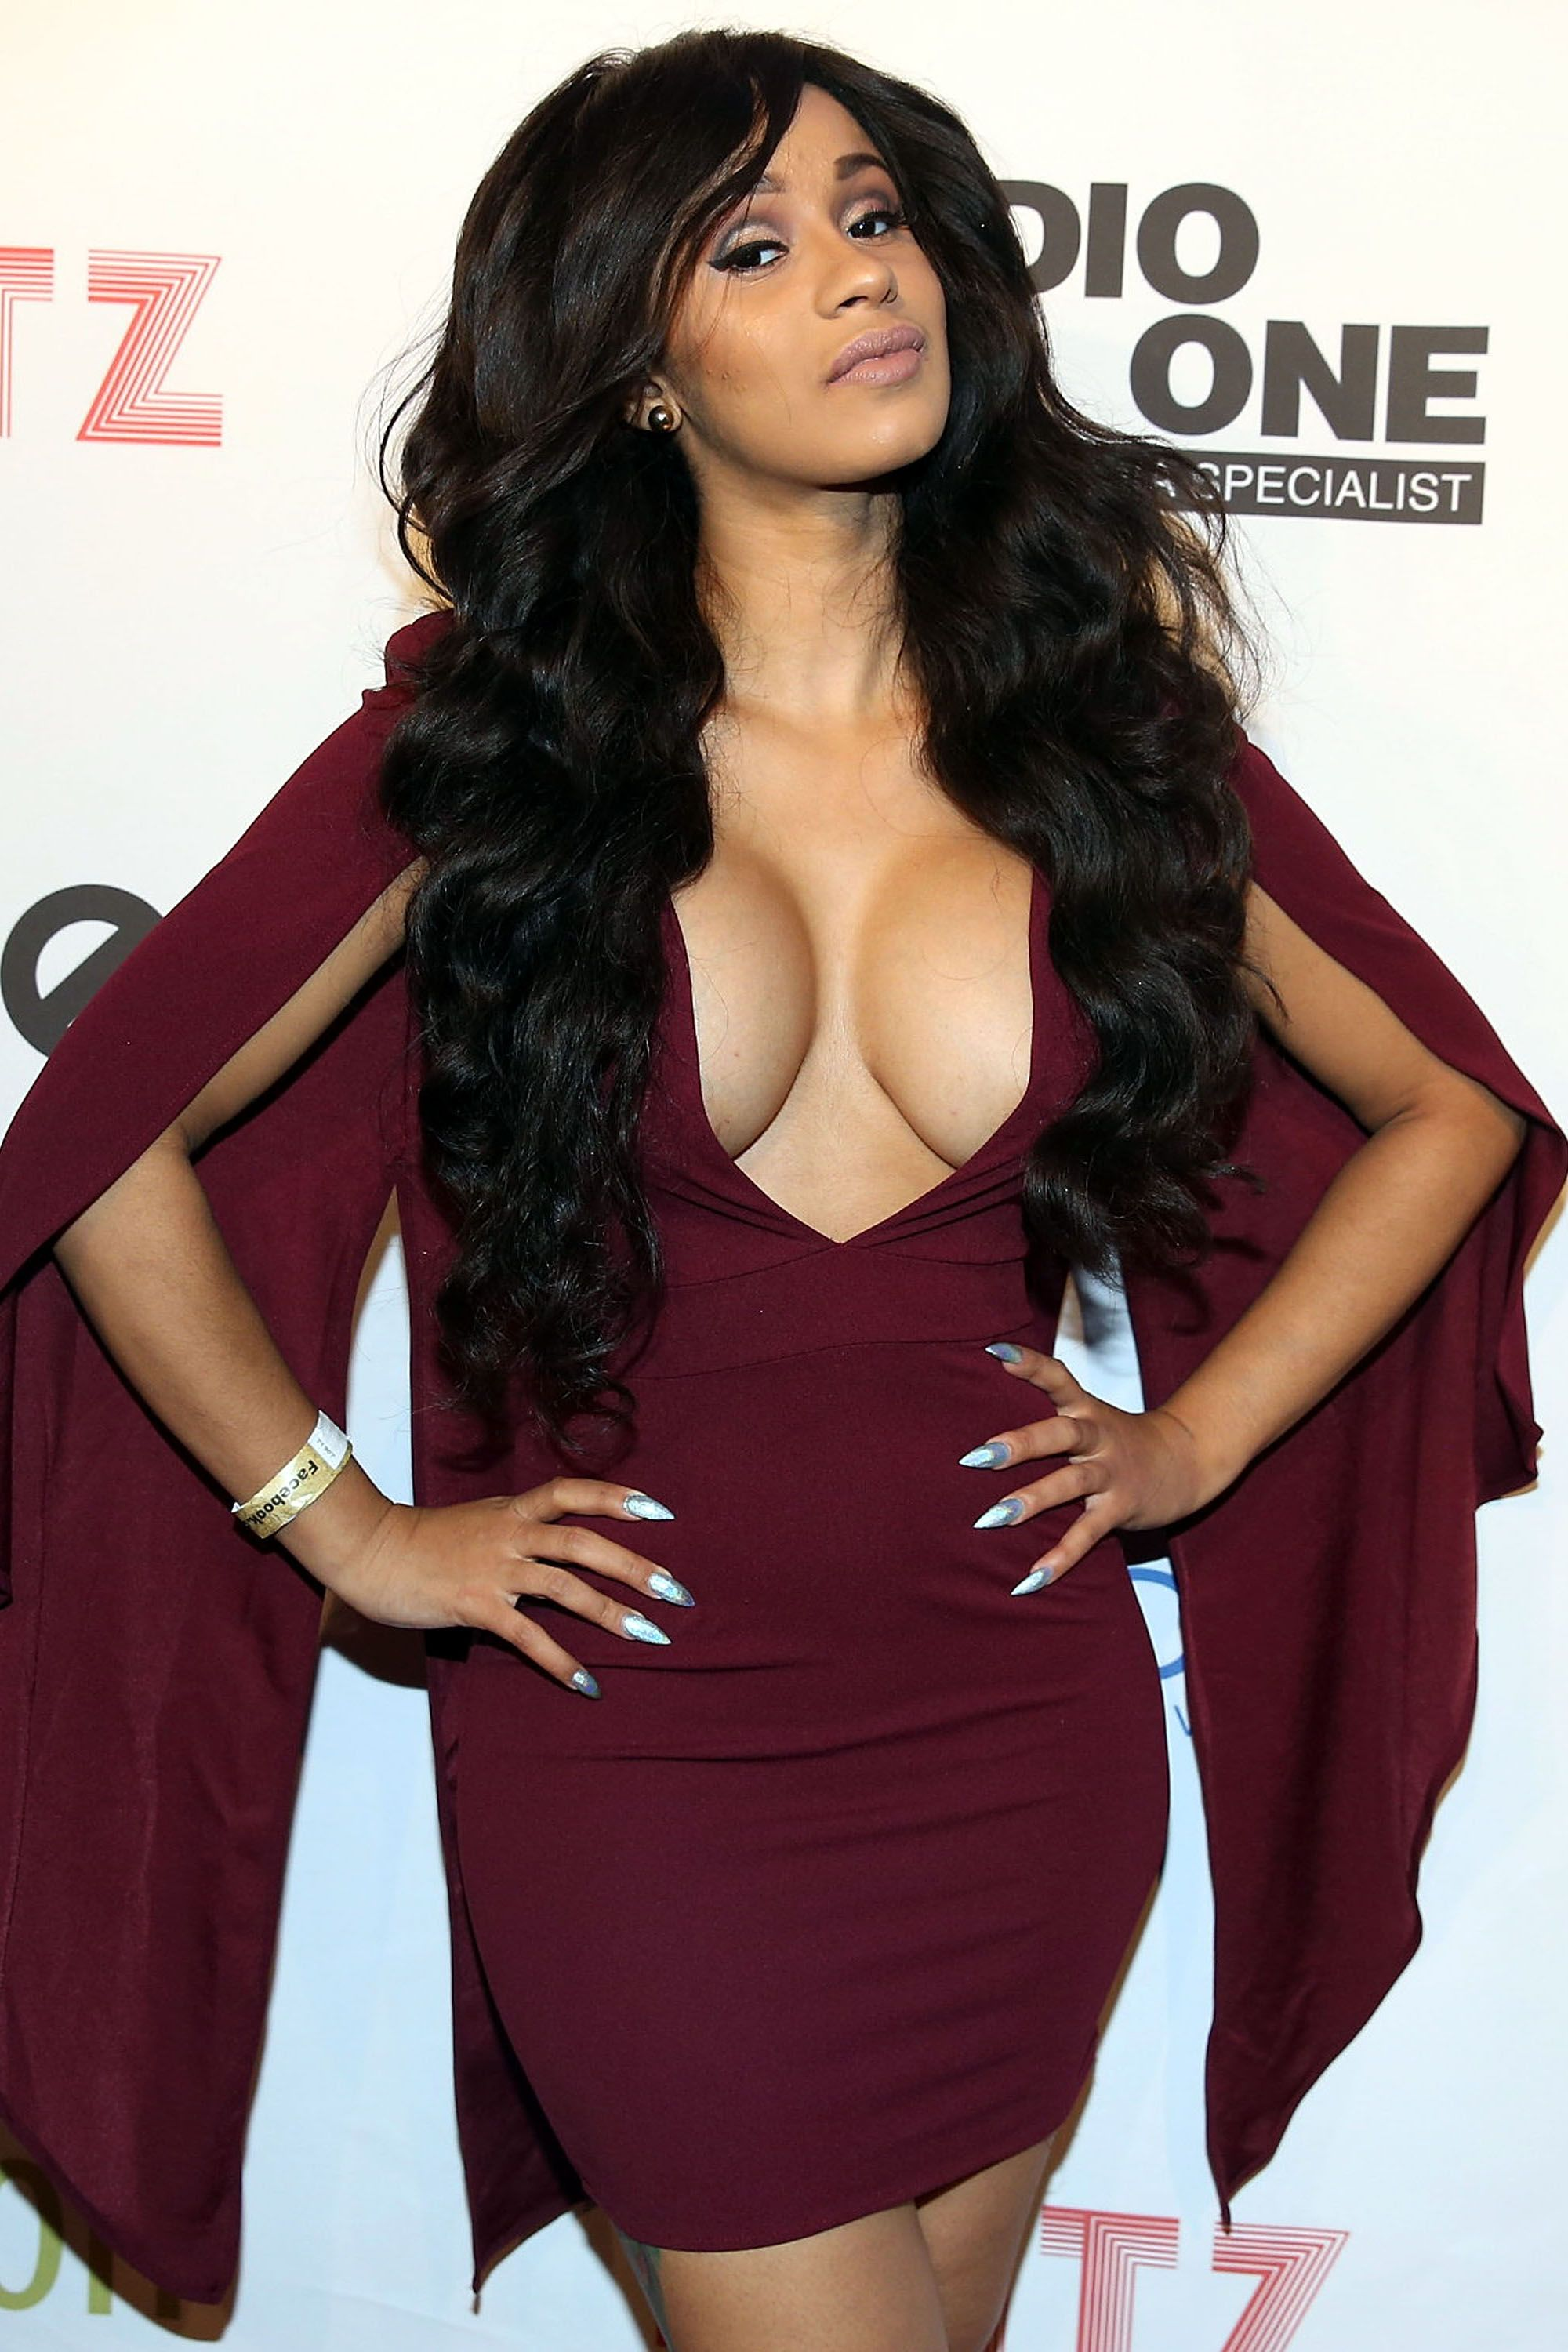 Cardi B Facts 29 Things You Didn T Know About Cardi B